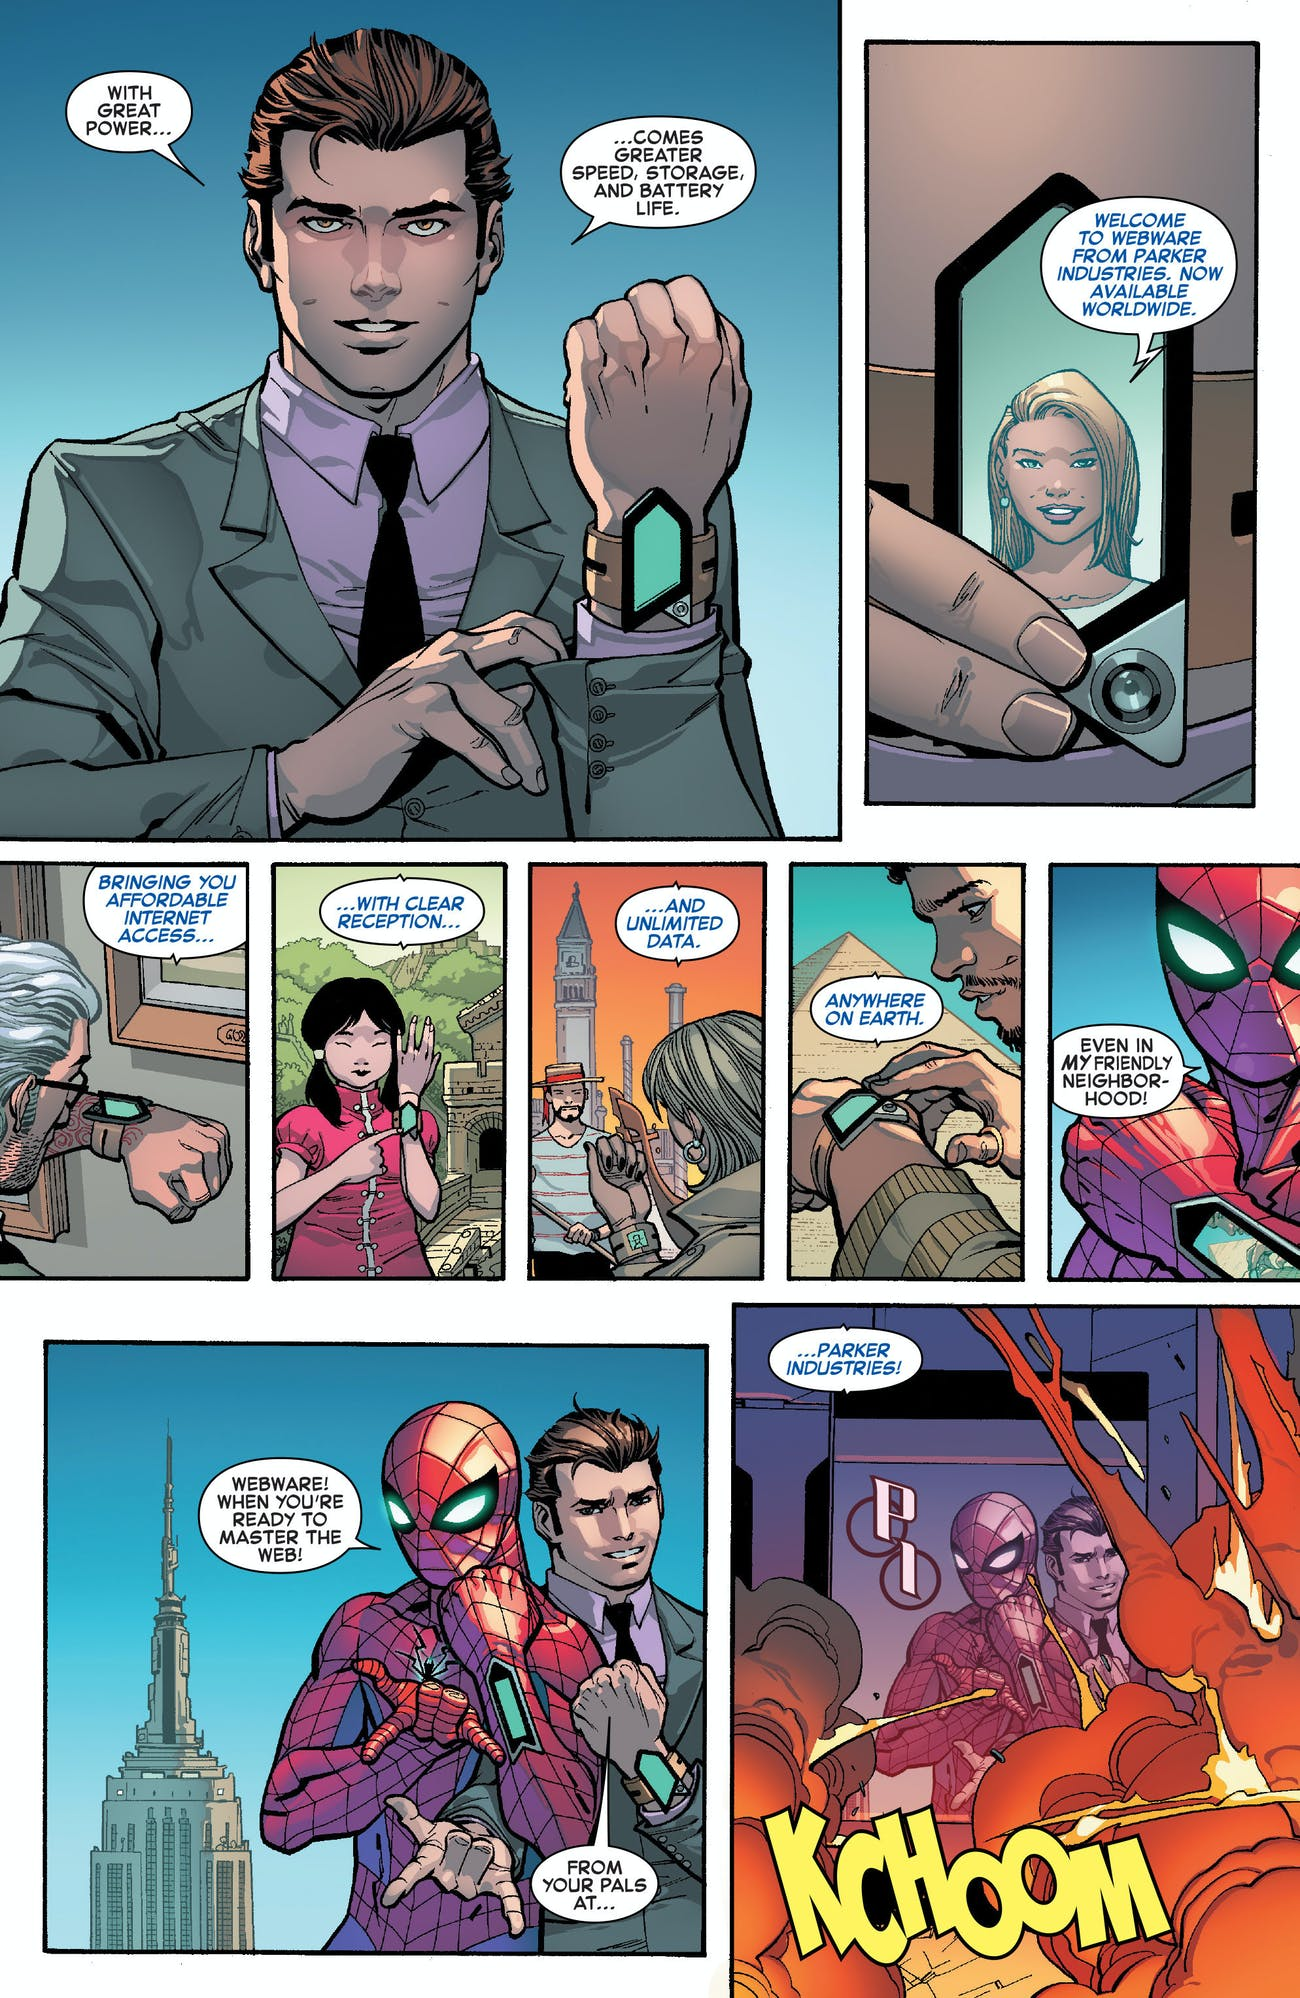 Peter Parker and Miles Morales: Two Spider-Men for Two Ages | Inverse